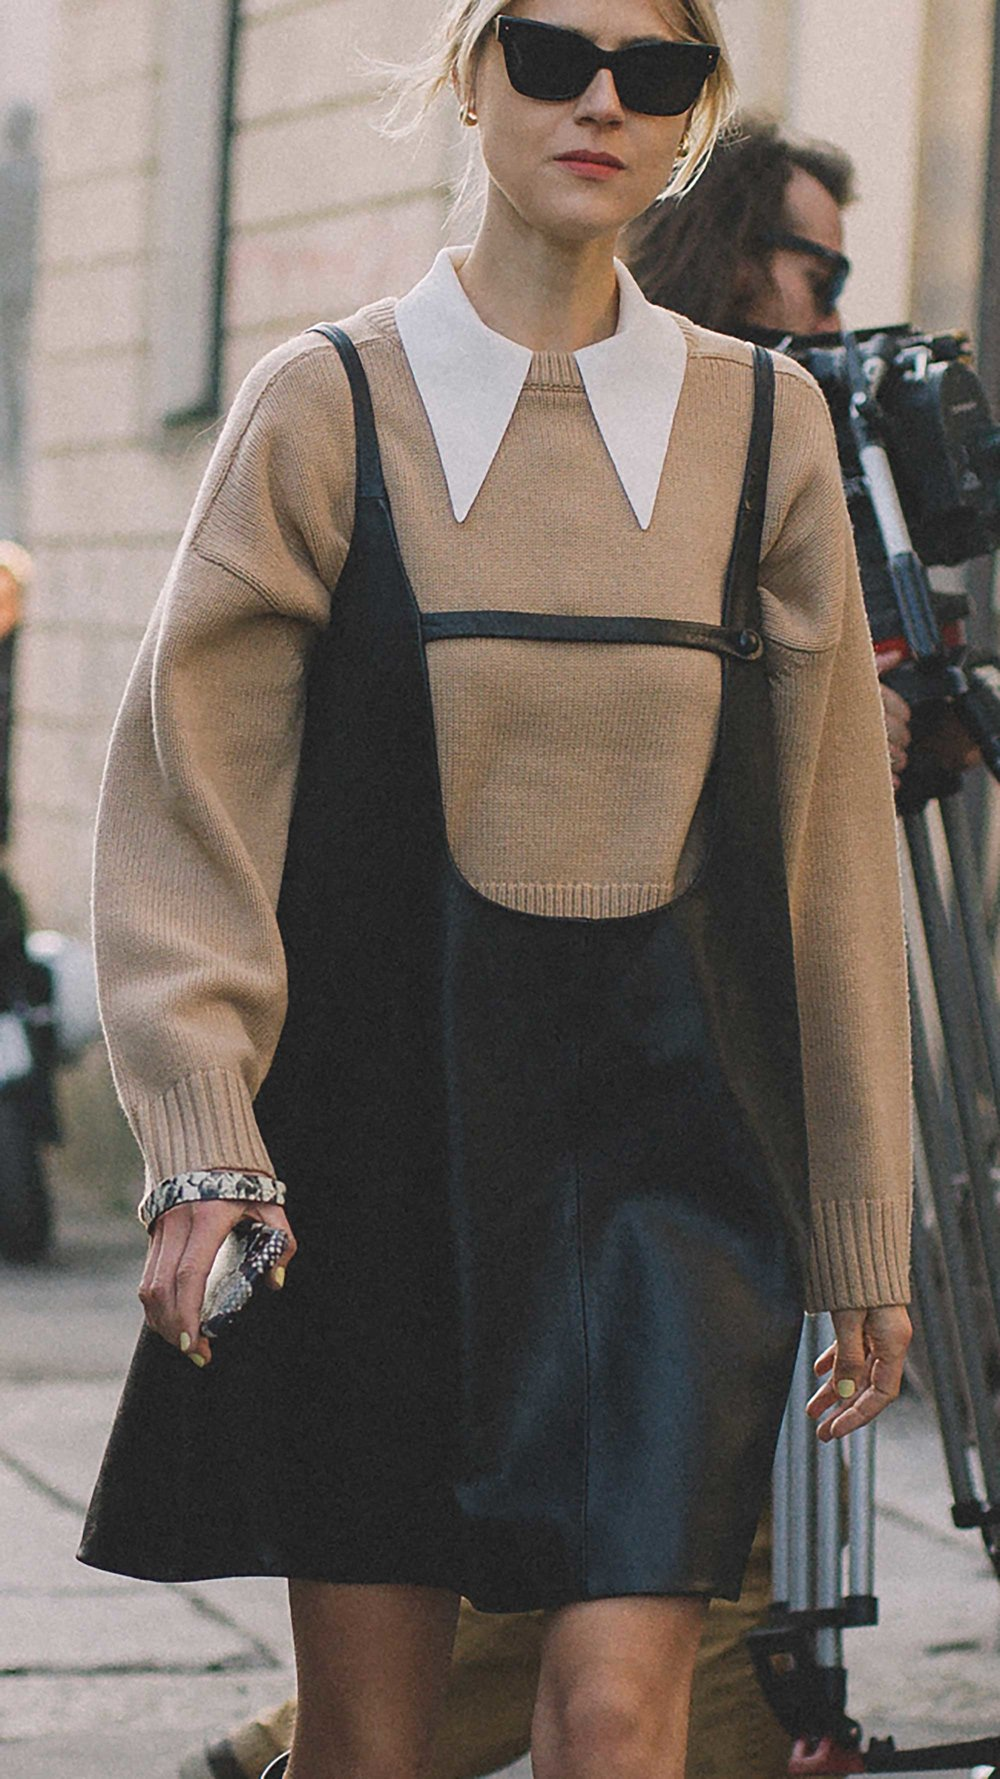 est outfits of Milan Fashion Week street style day two MFW FW19 15.jpg